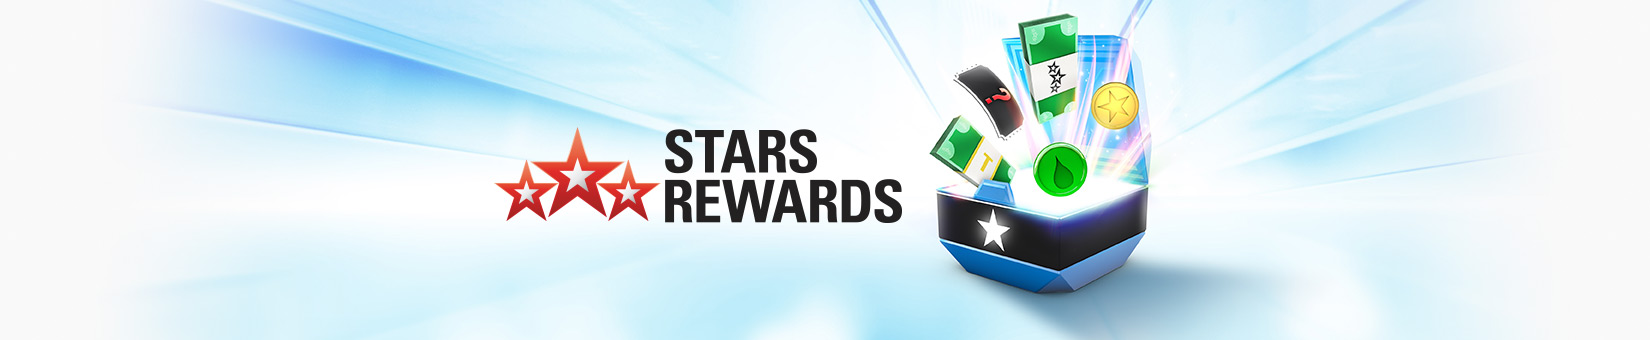 Casino Rewards - 82570